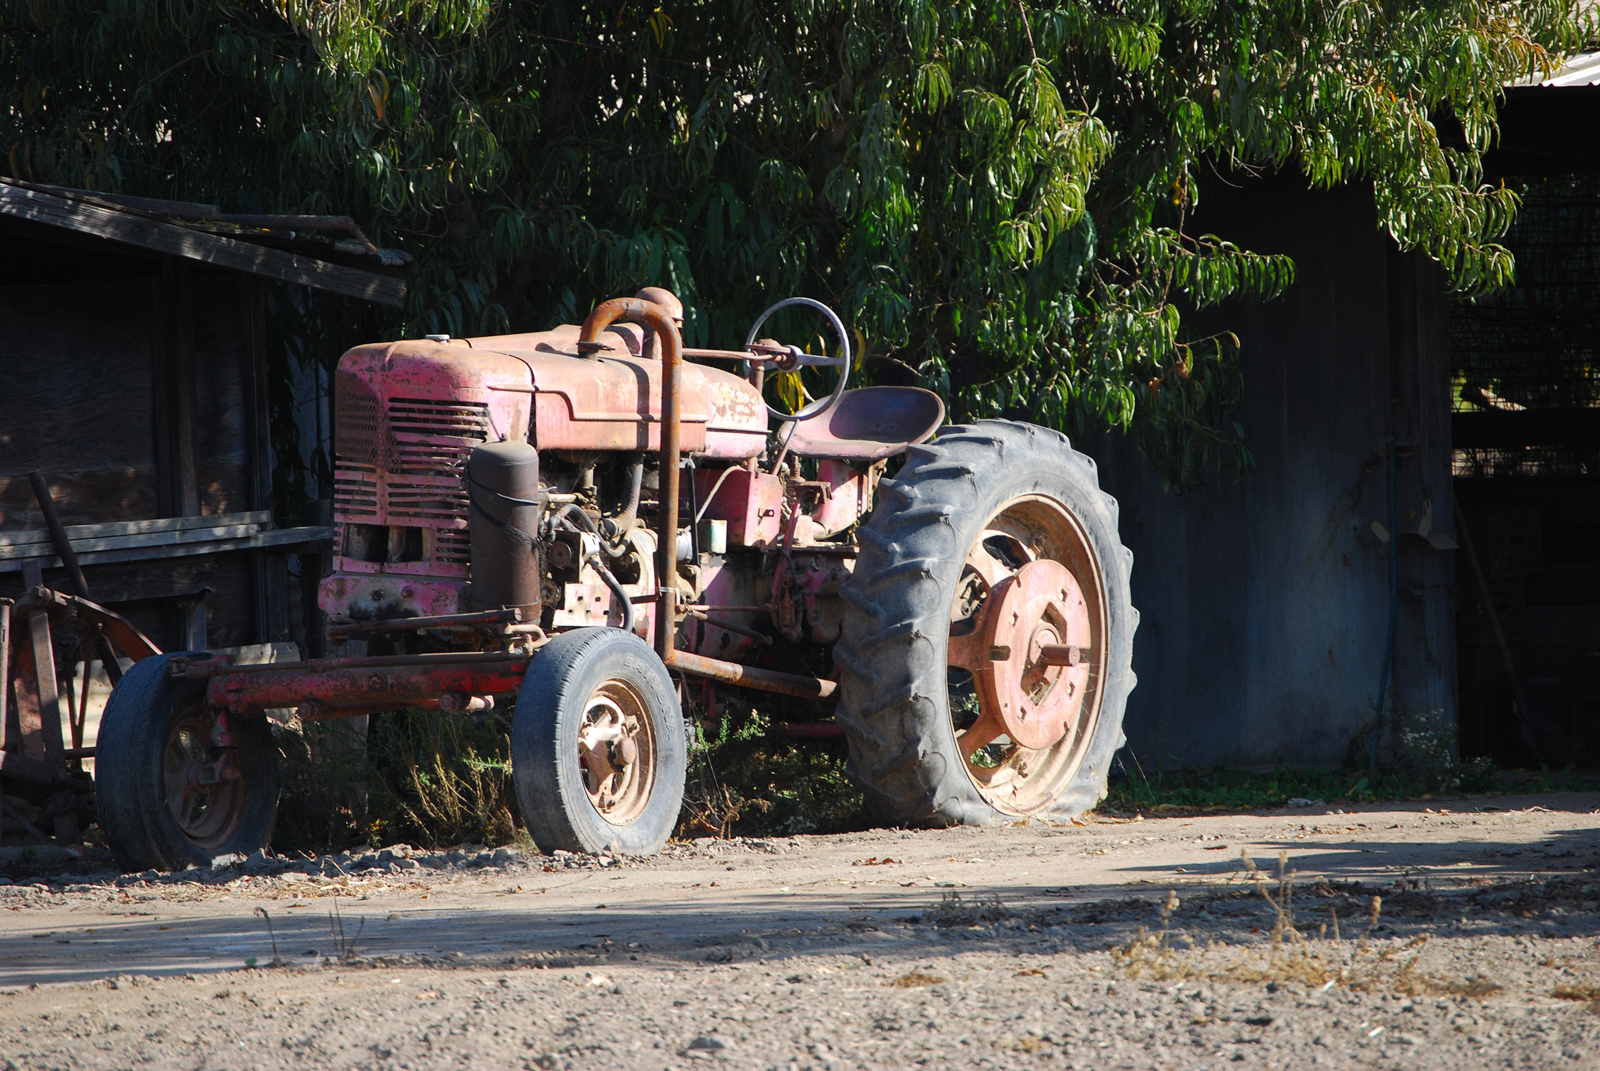 Forgotten Workhorse, Agriculture, Antique, Broken, Bspo06, HQ Photo